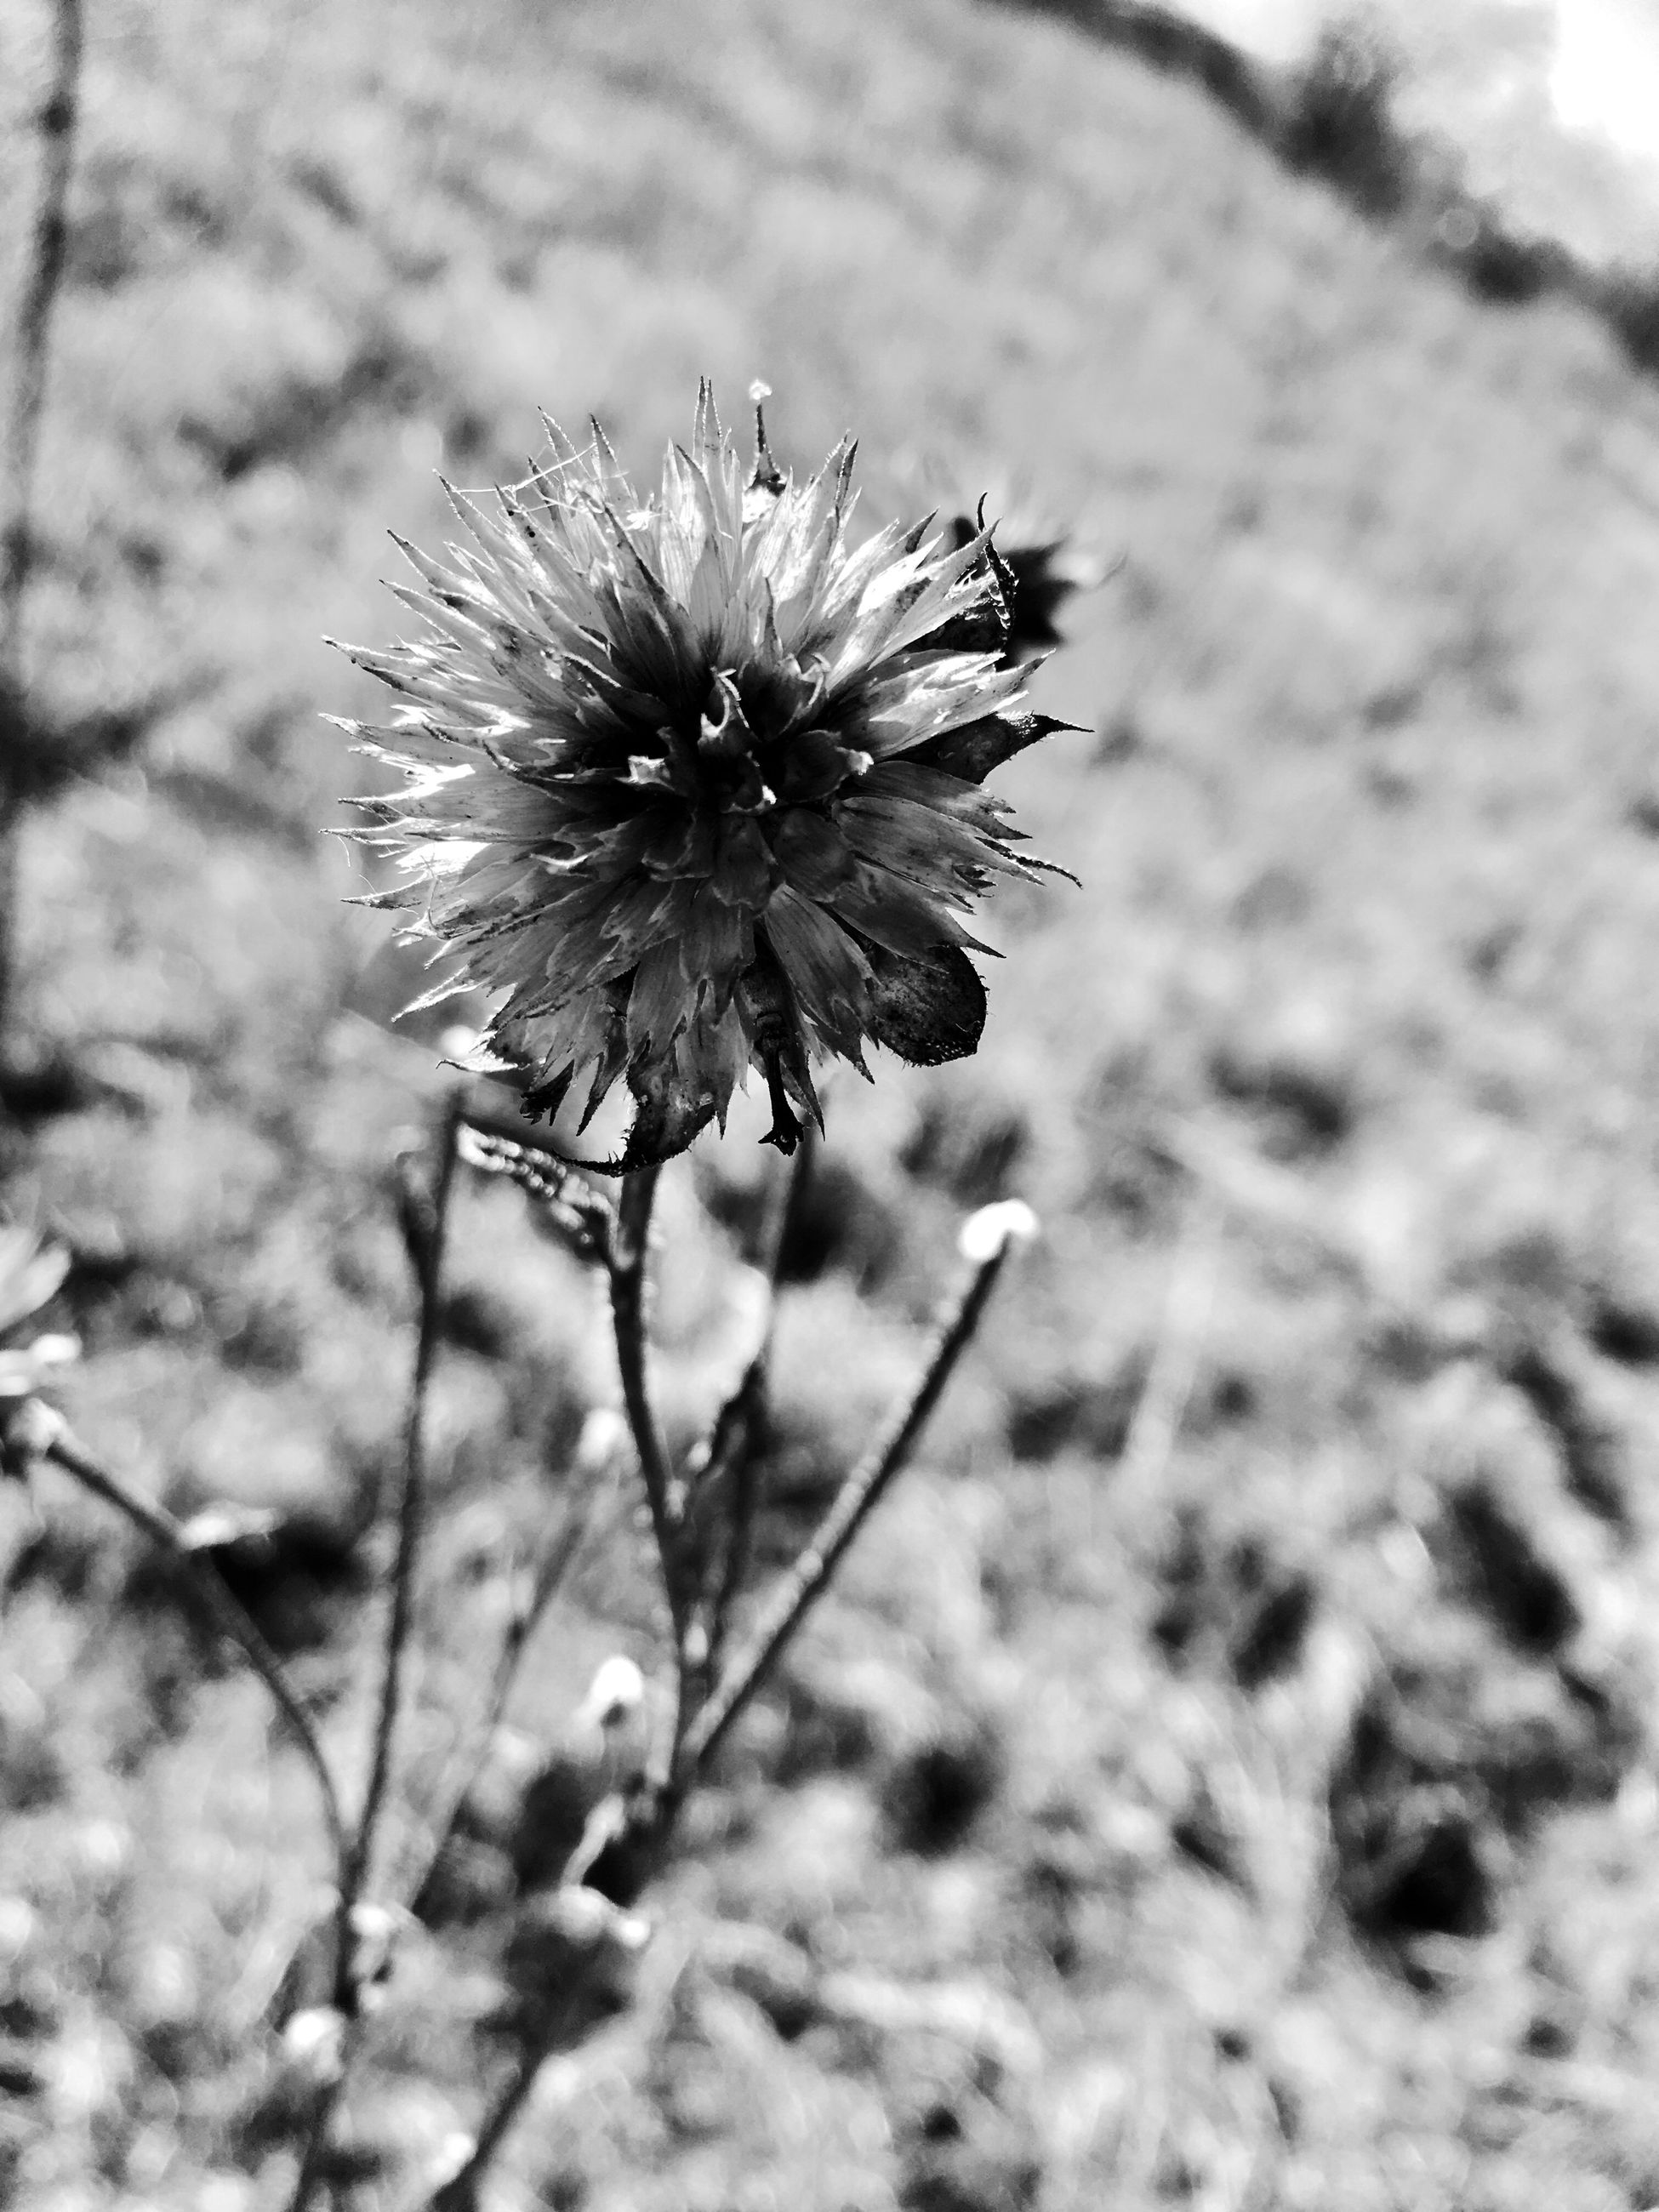 flower, fragility, nature, growth, focus on foreground, flower head, beauty in nature, outdoors, plant, freshness, no people, day, blooming, thistle, close-up, insect